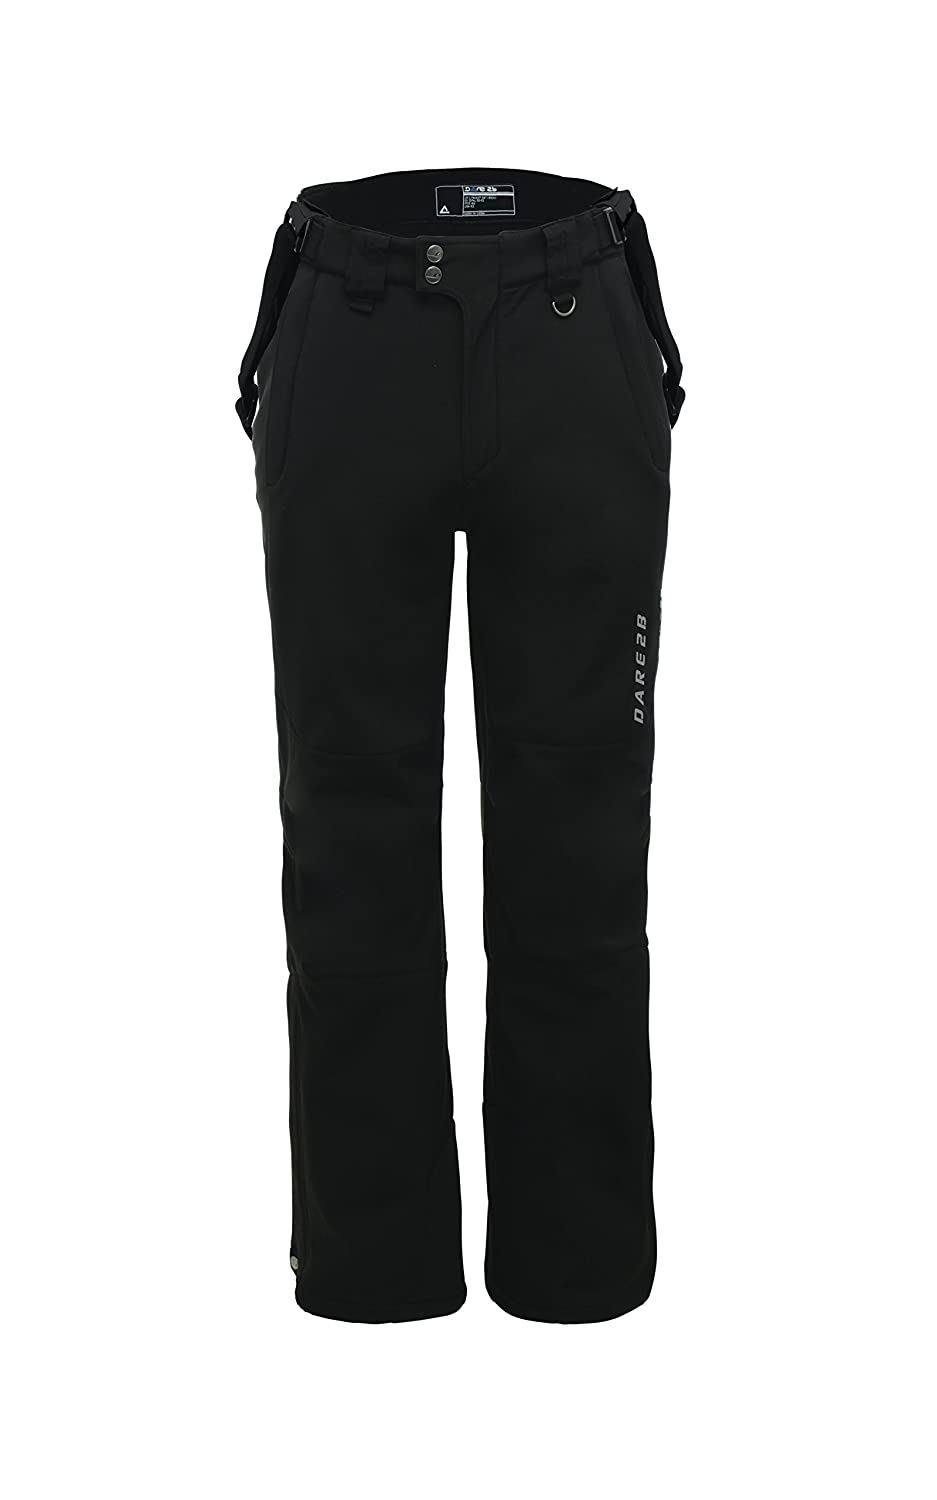 Dare 2b Men's Snow Pants Revere